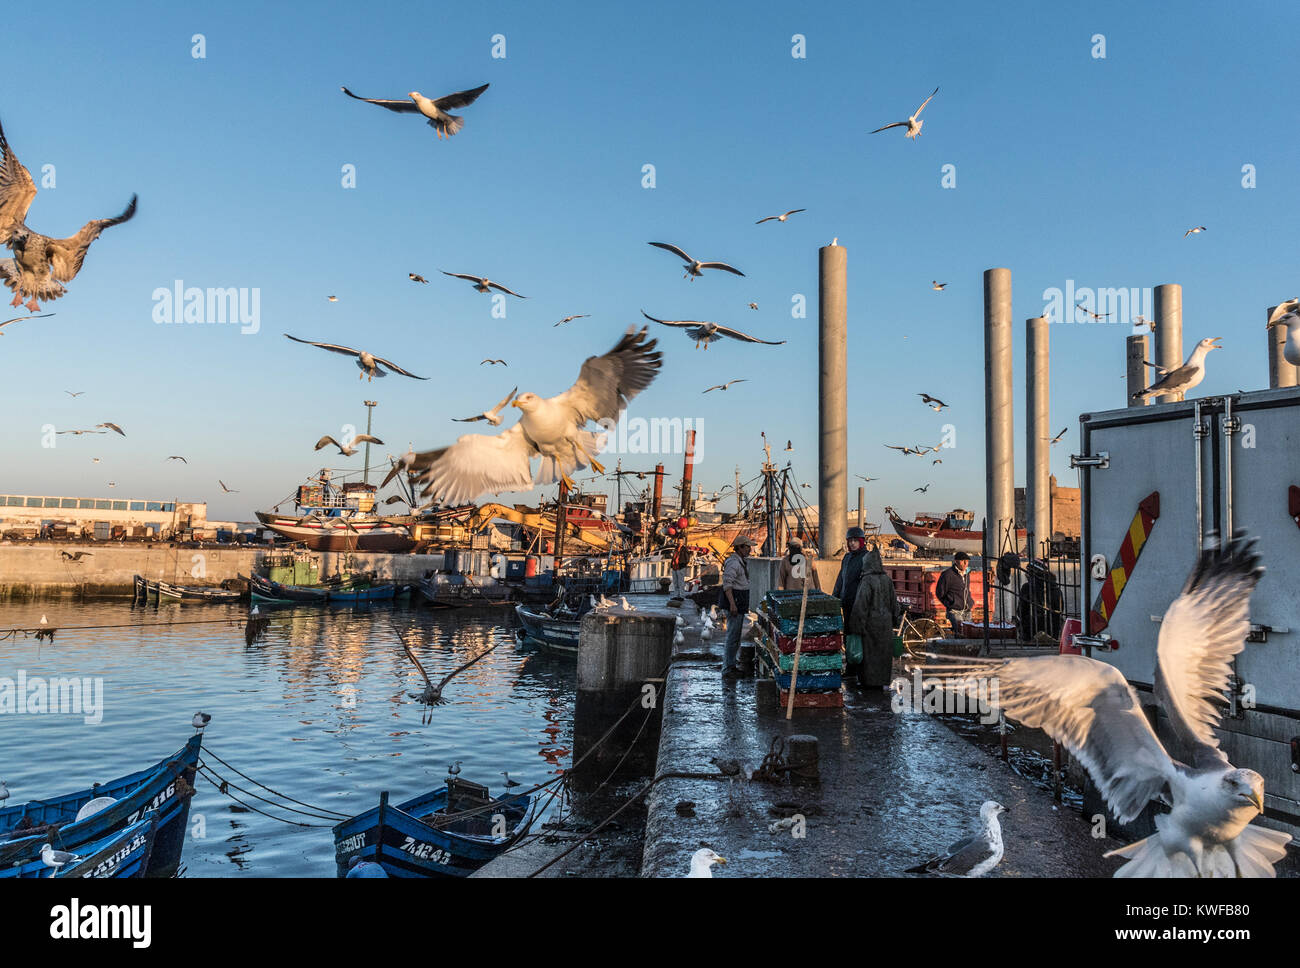 Commericial fishing industry in action around the harbour. - Stock Image